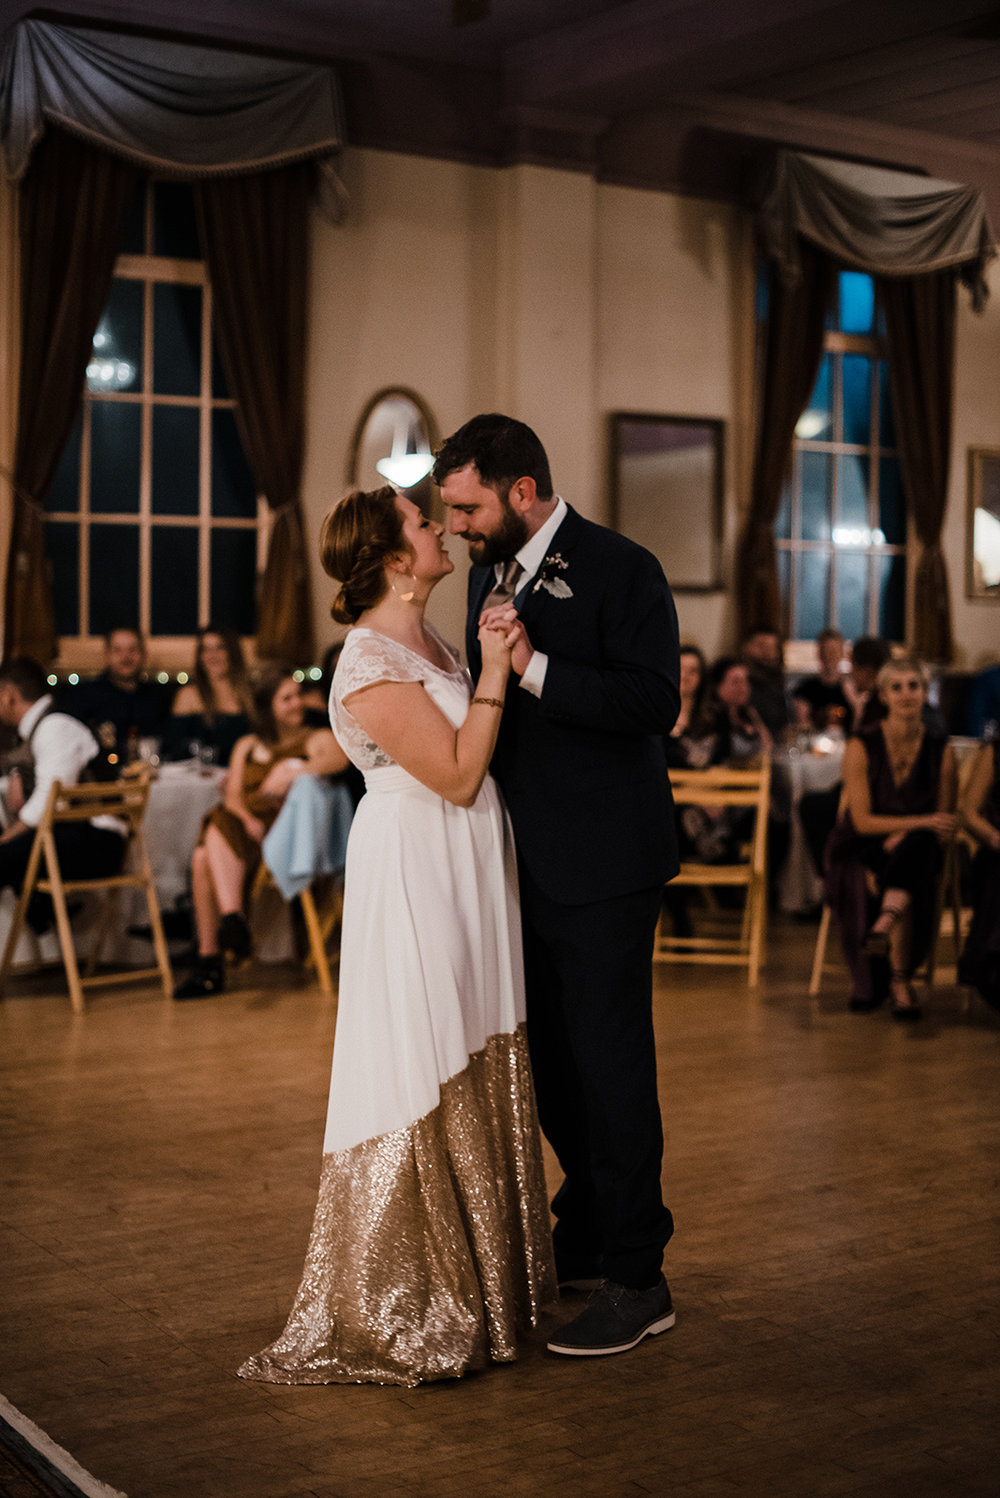 Jamie_Luke_Portland_Wedding_The_Foxes_Photography_570.jpg